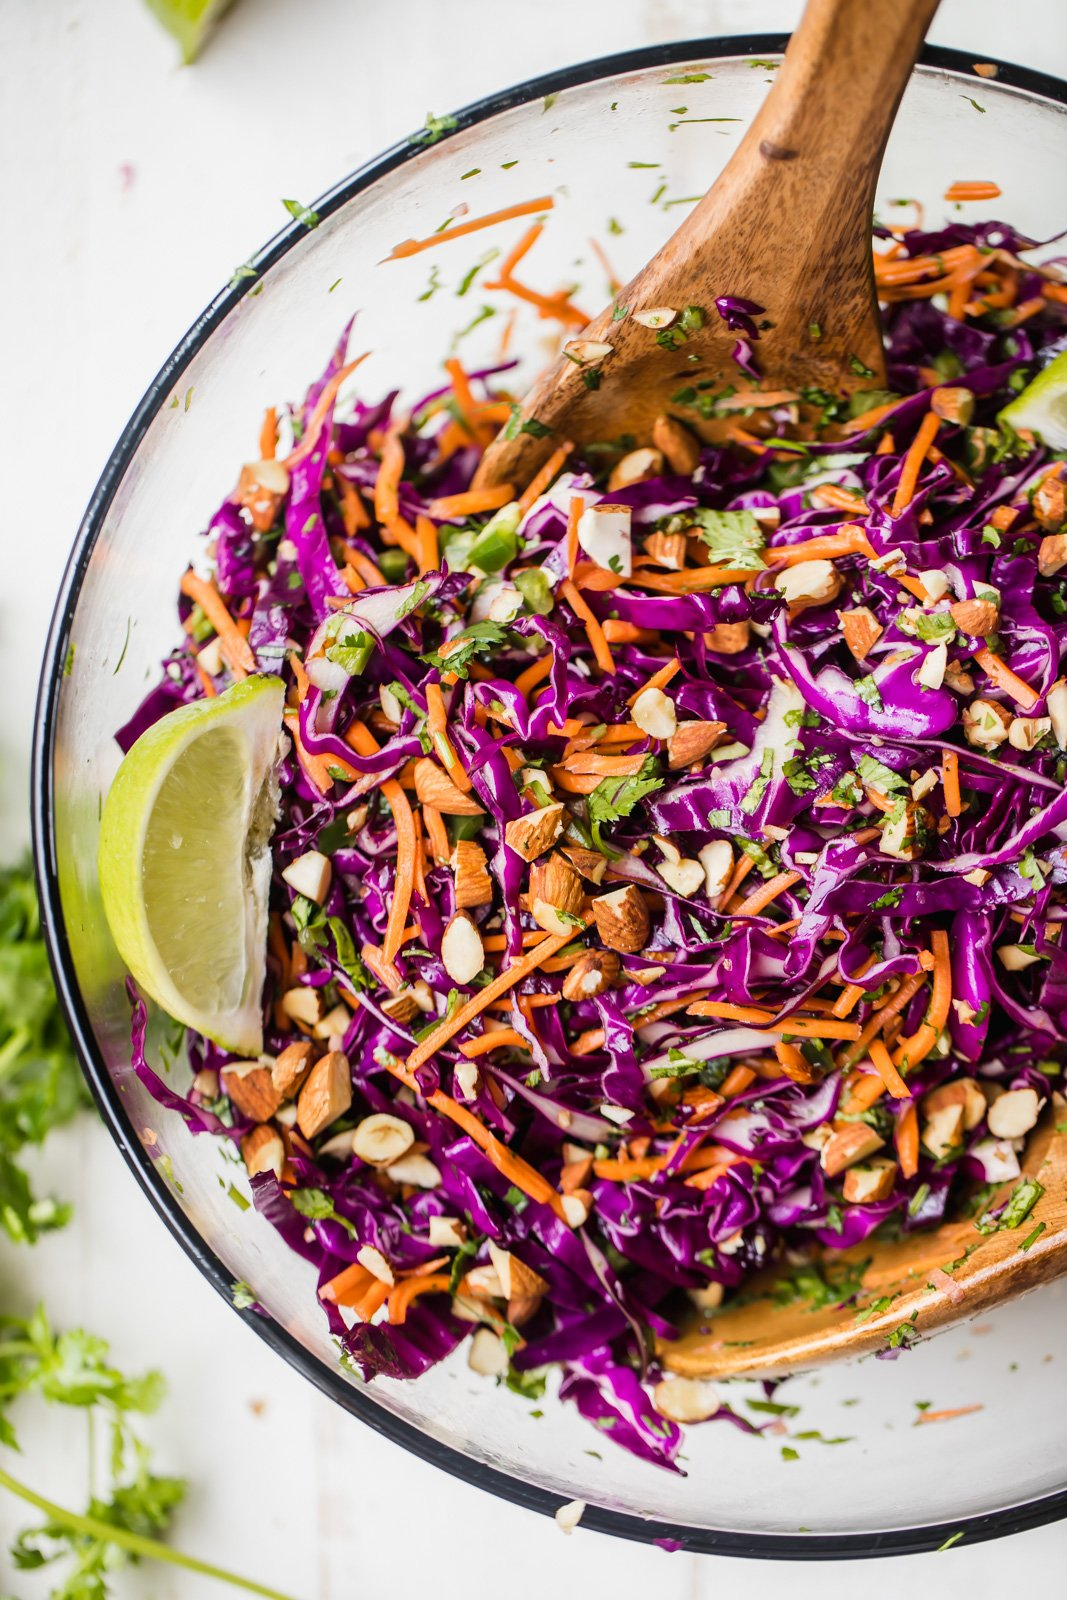 The BEST healthy coleslaw made with fresh purple cabbage, carrots, cilantro, and a kick of heat from jalapeño. There's no mayo, just a naturally sweet and slightly tangy dressing. This simple, healthy coleslaw is perfect serving with your favorite grilling recipes all summer!